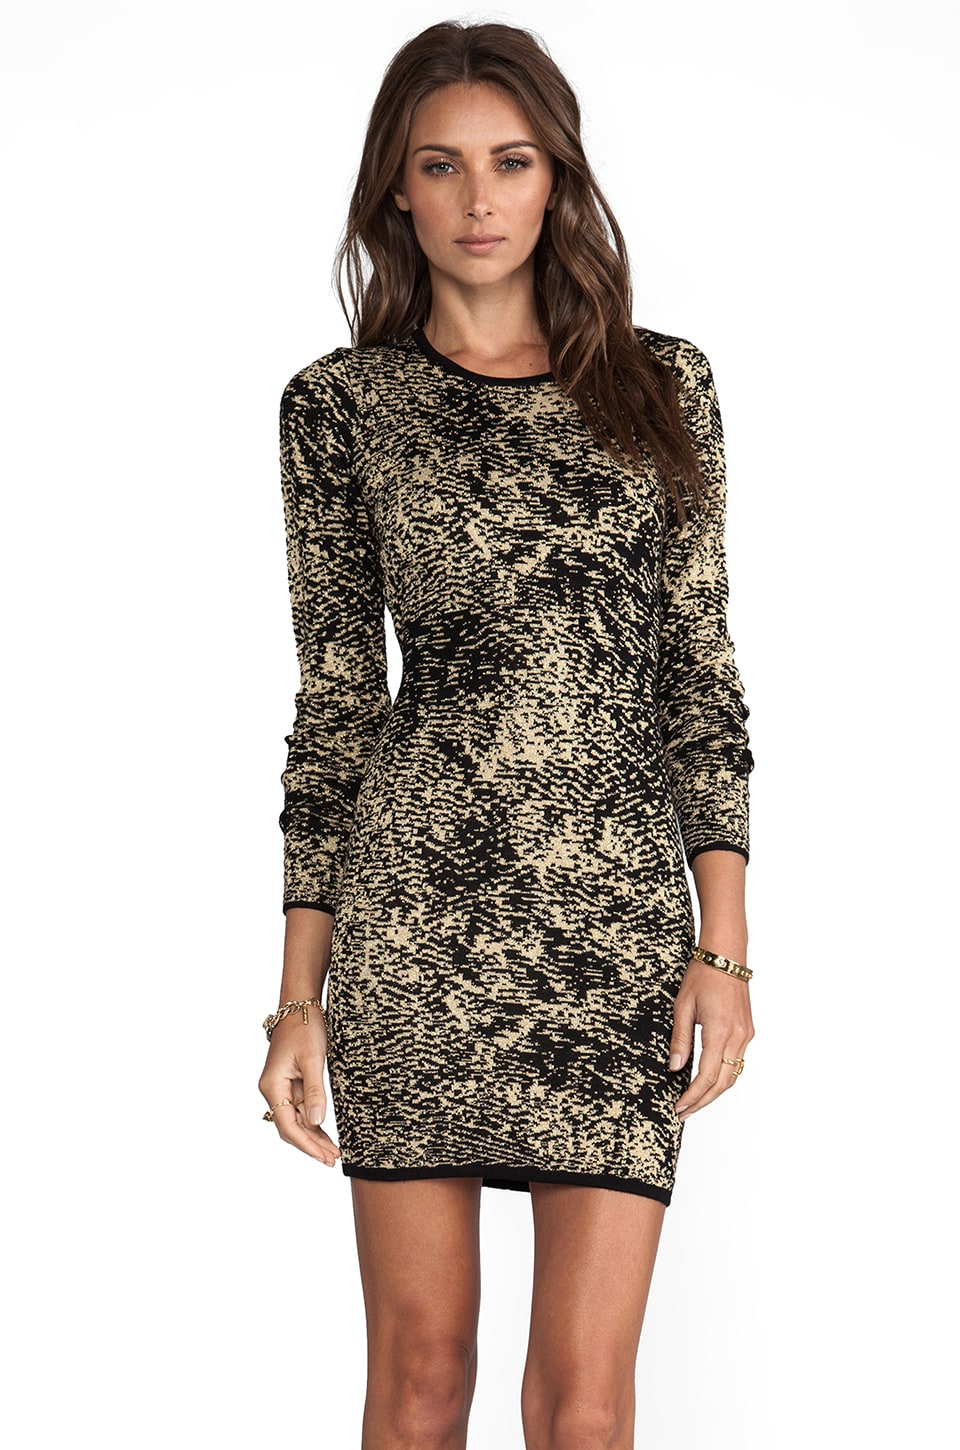 Parker Ashton Long Sleeve Dress in Black/Bronze